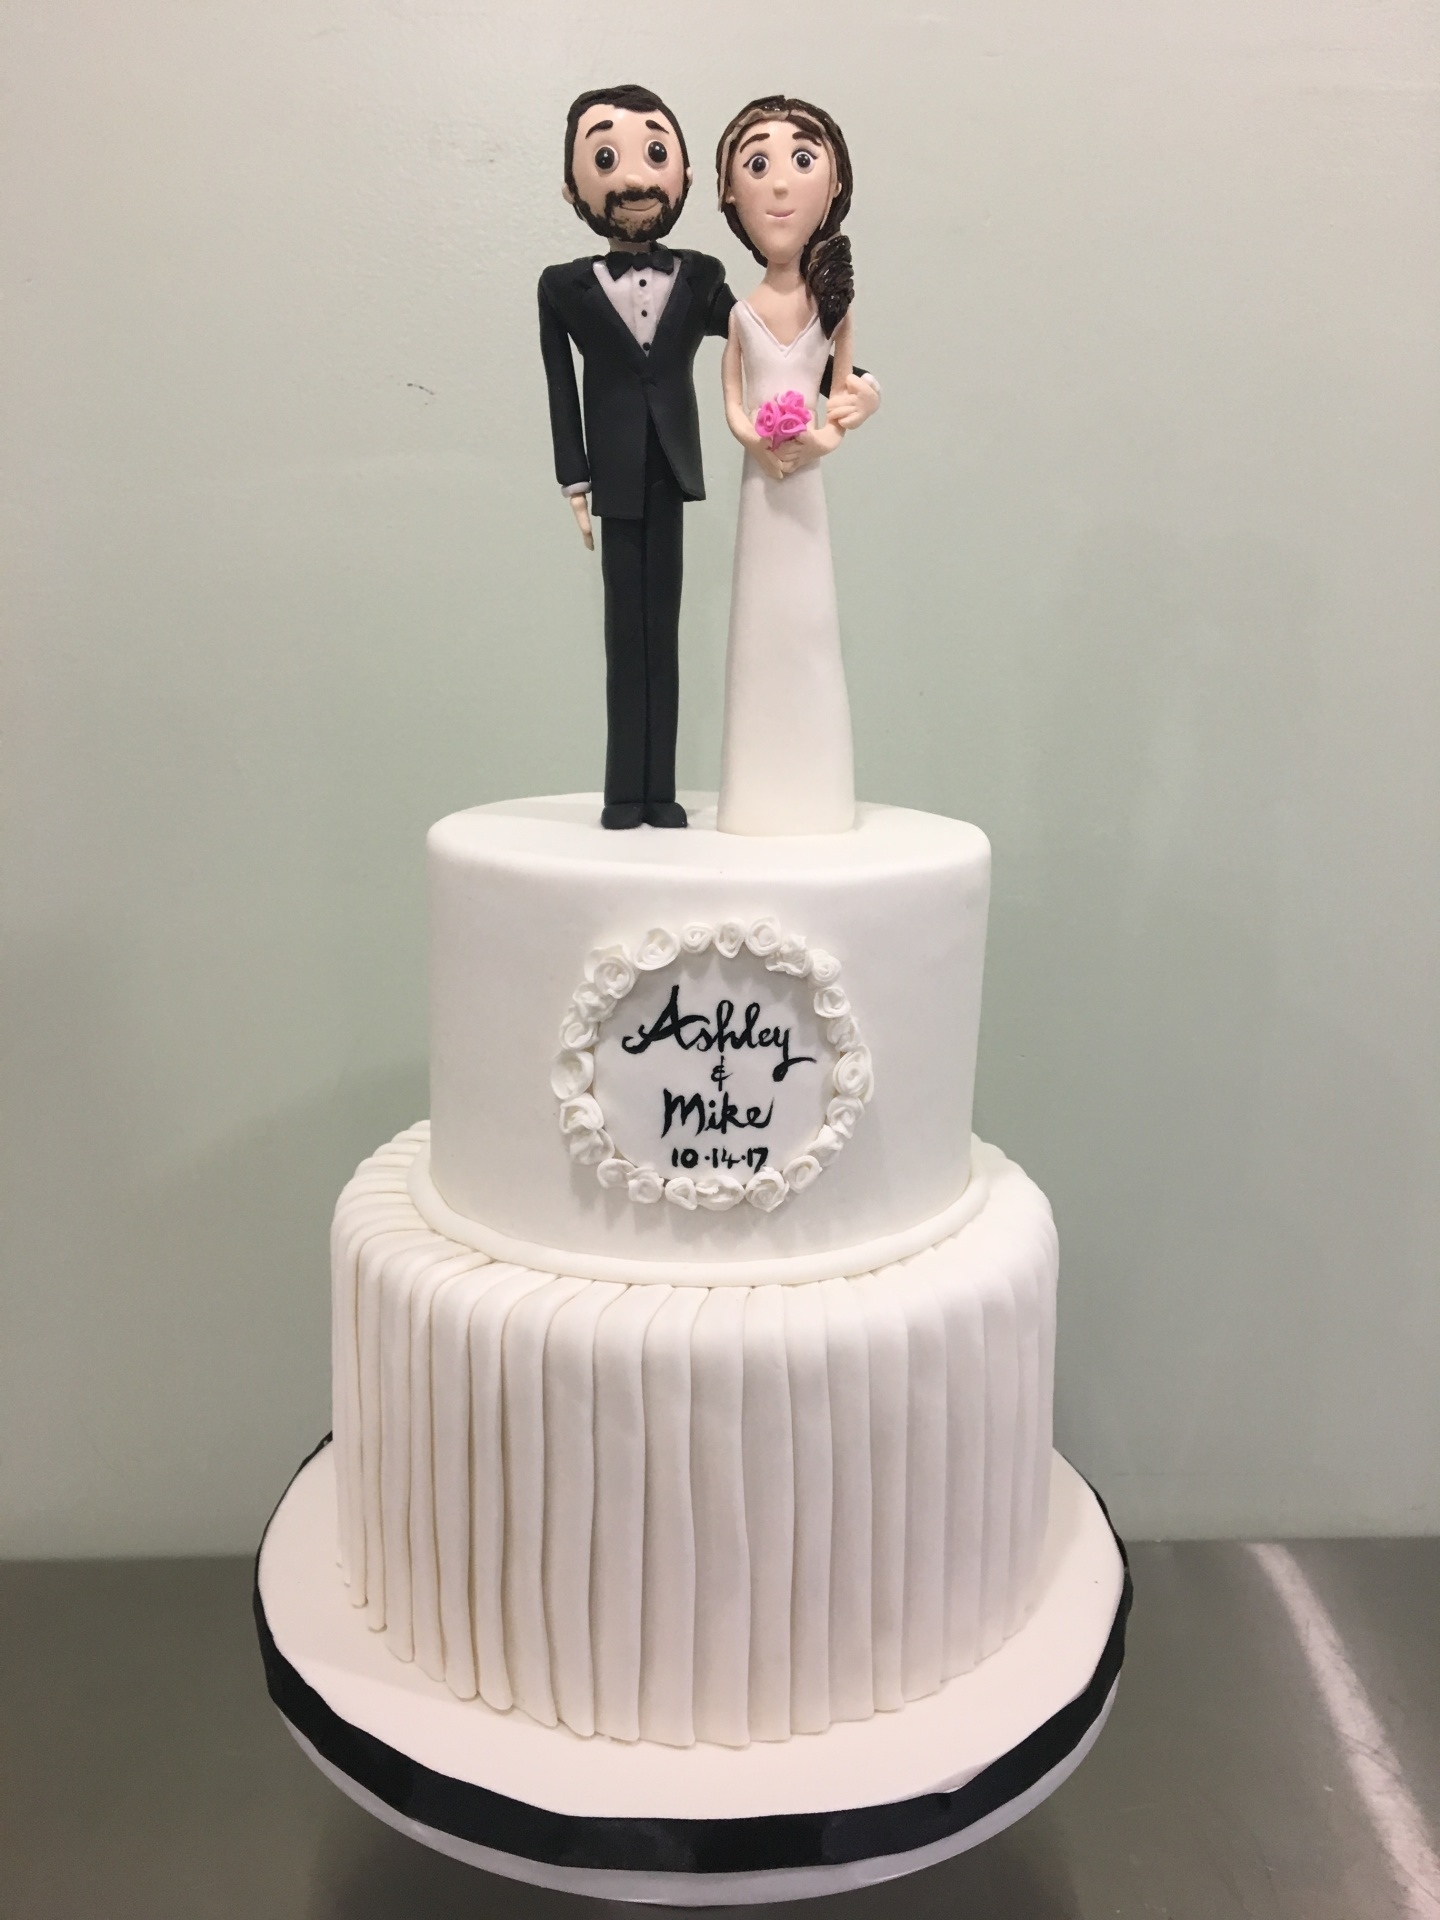 wedding Cake NJ fondant bride and groom figurines